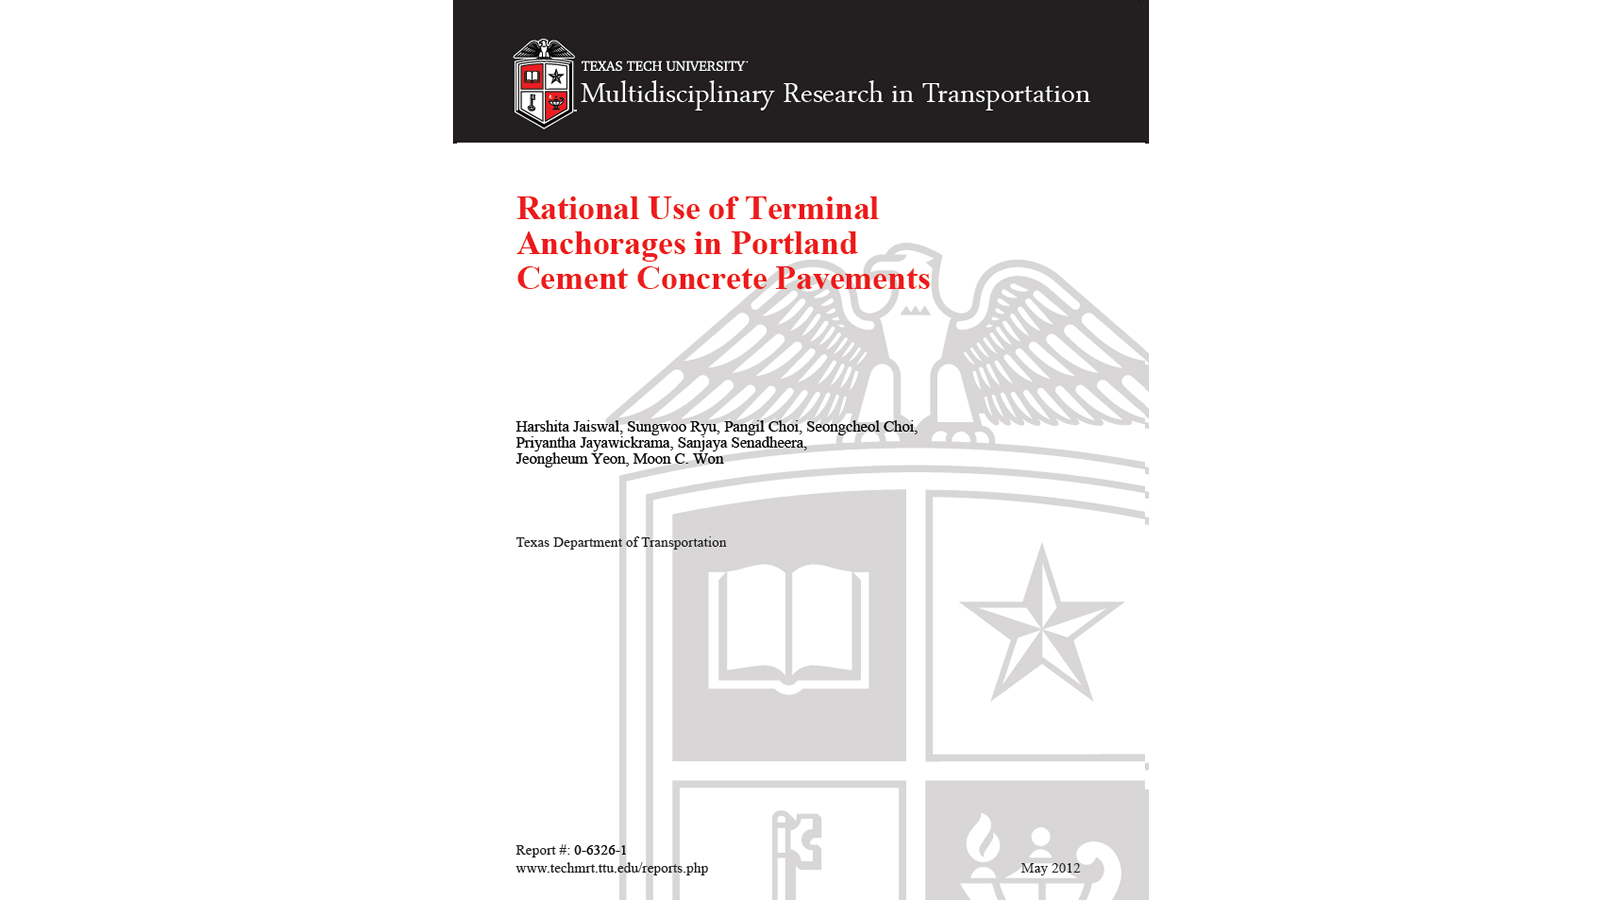 Rational Use of Terminal Anchorages (FHWA/TX-12/0-6326-1)